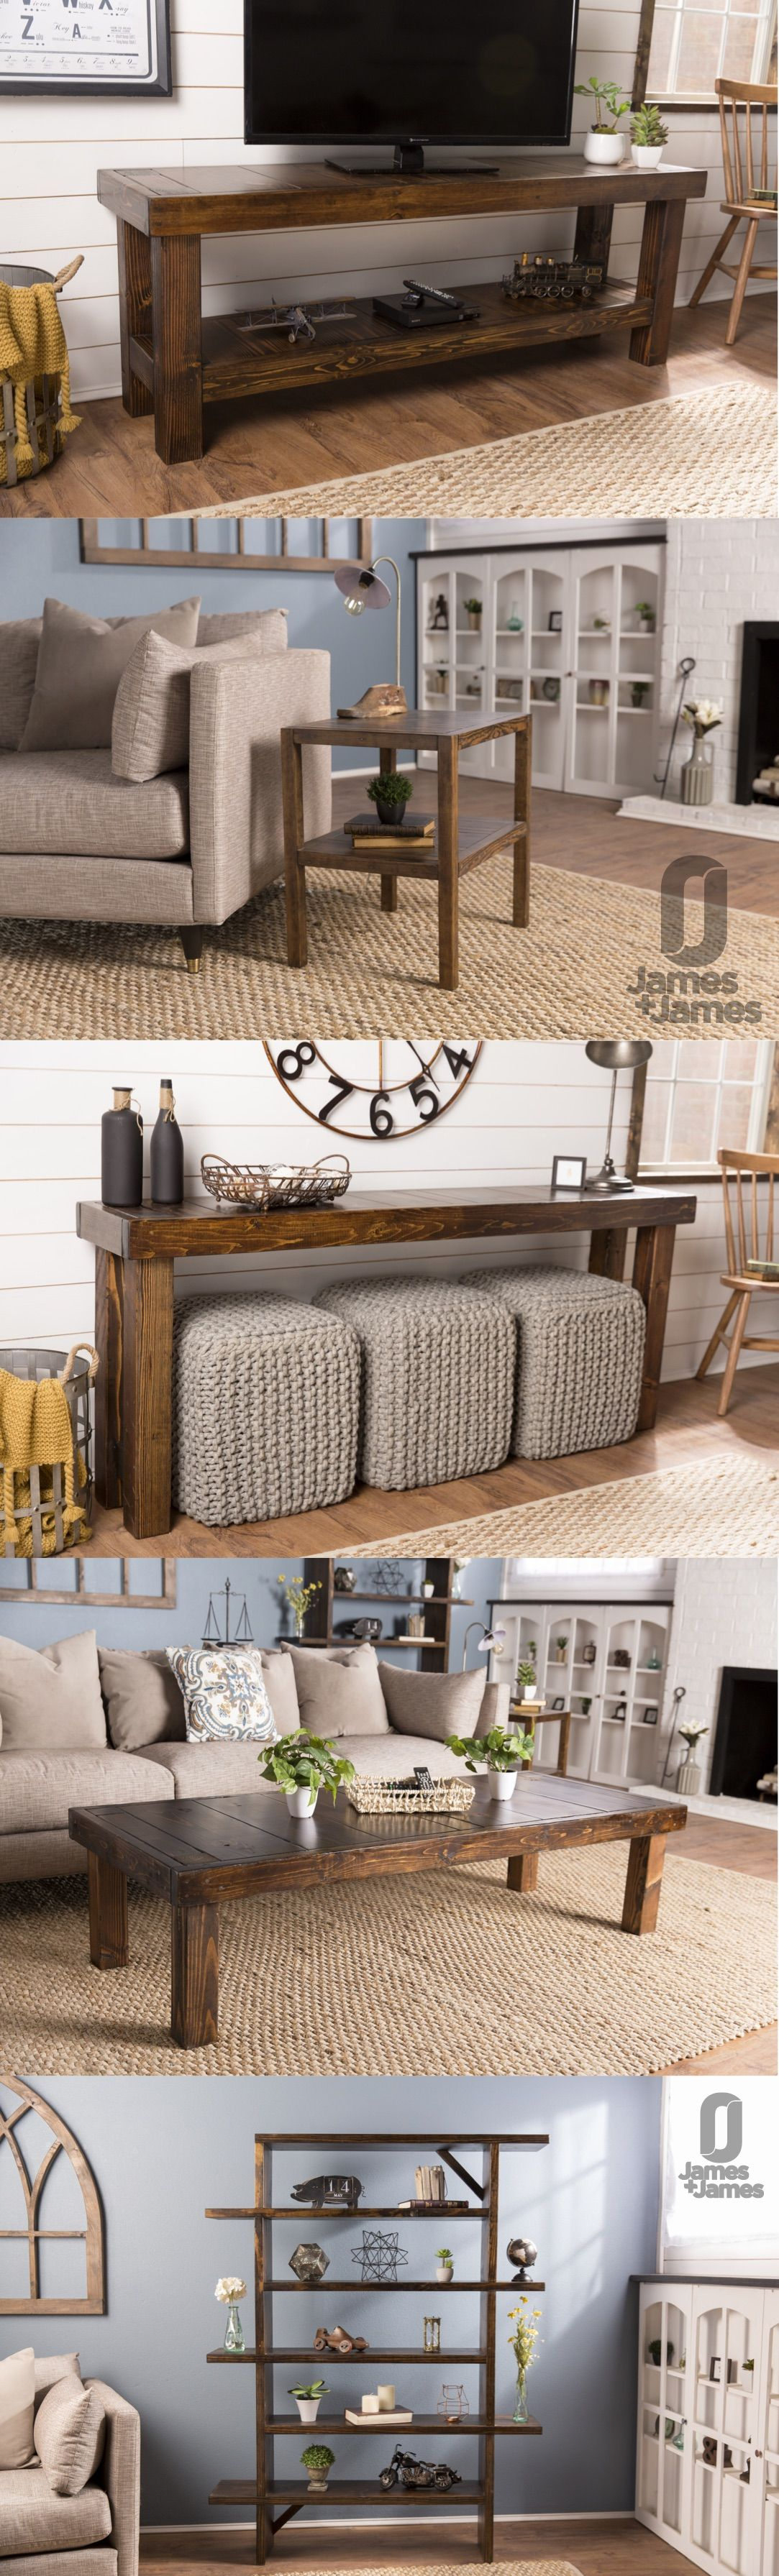 James james solid wood handcrafted living room furniture media console tv